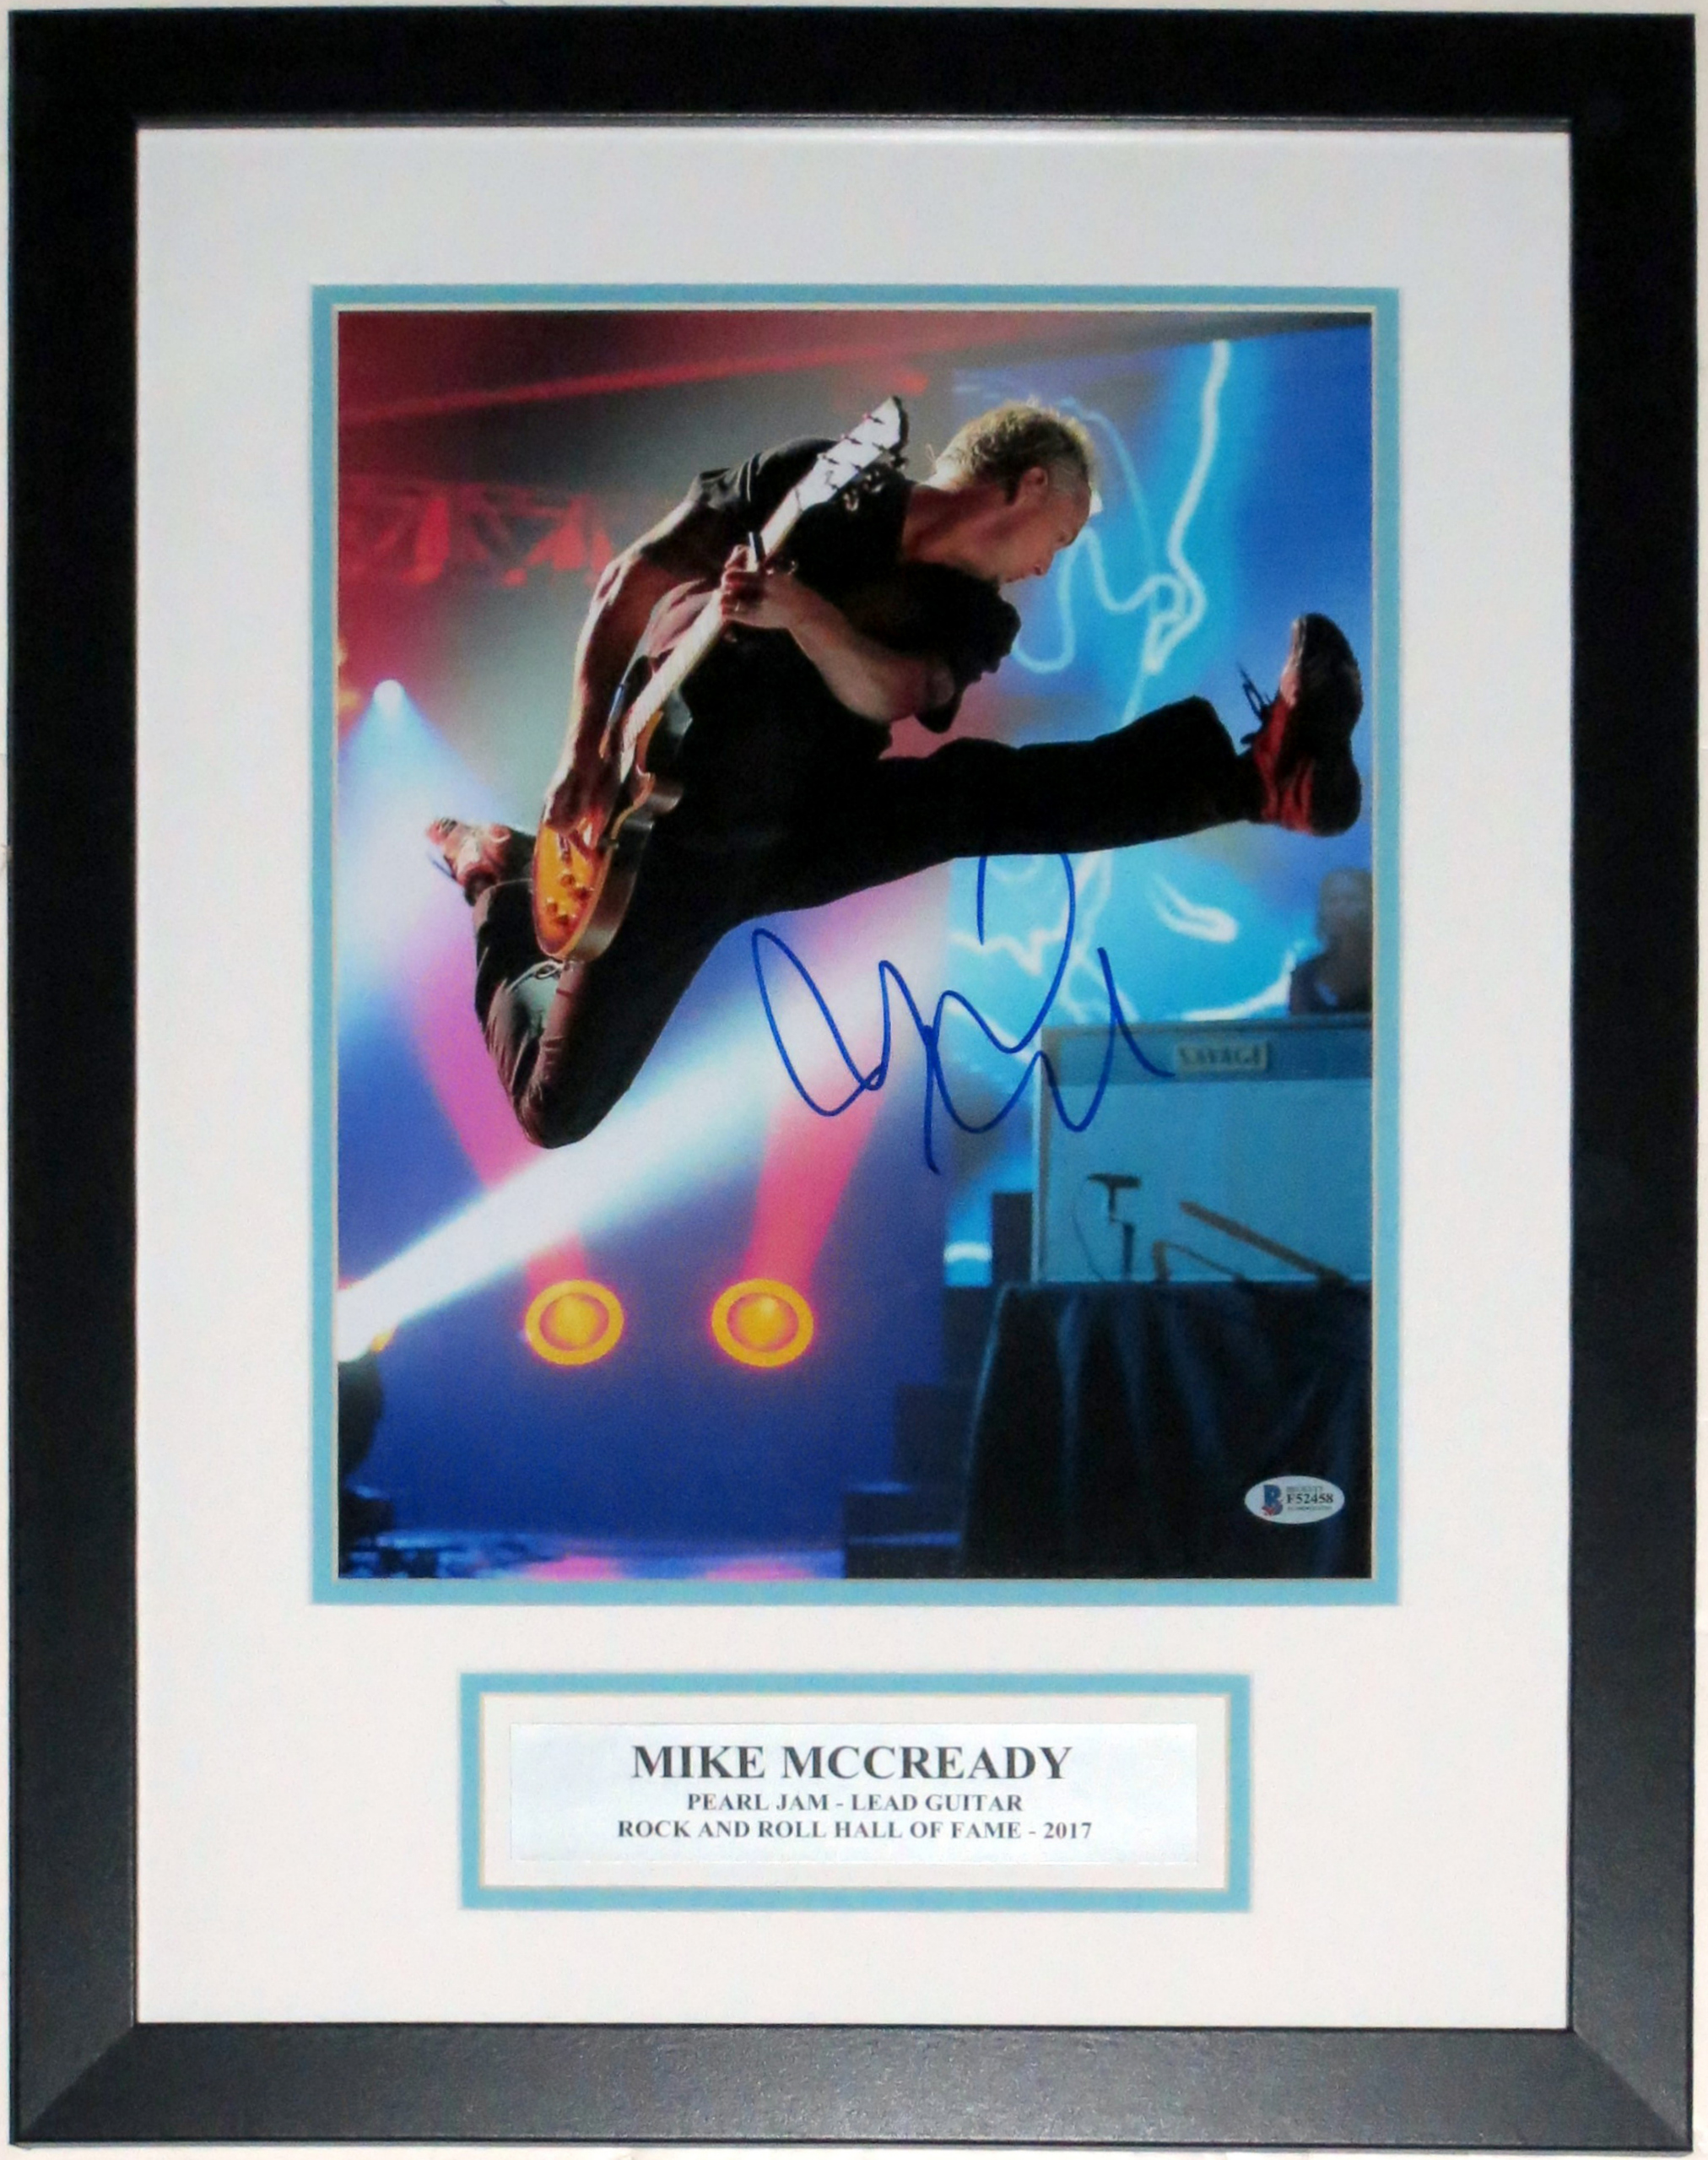 Mike McCready Signed Pearl Jam Concert 11x14 Photo - Beckett Authentication Services BAS COA Authenticated - Professionally Framed & Plate